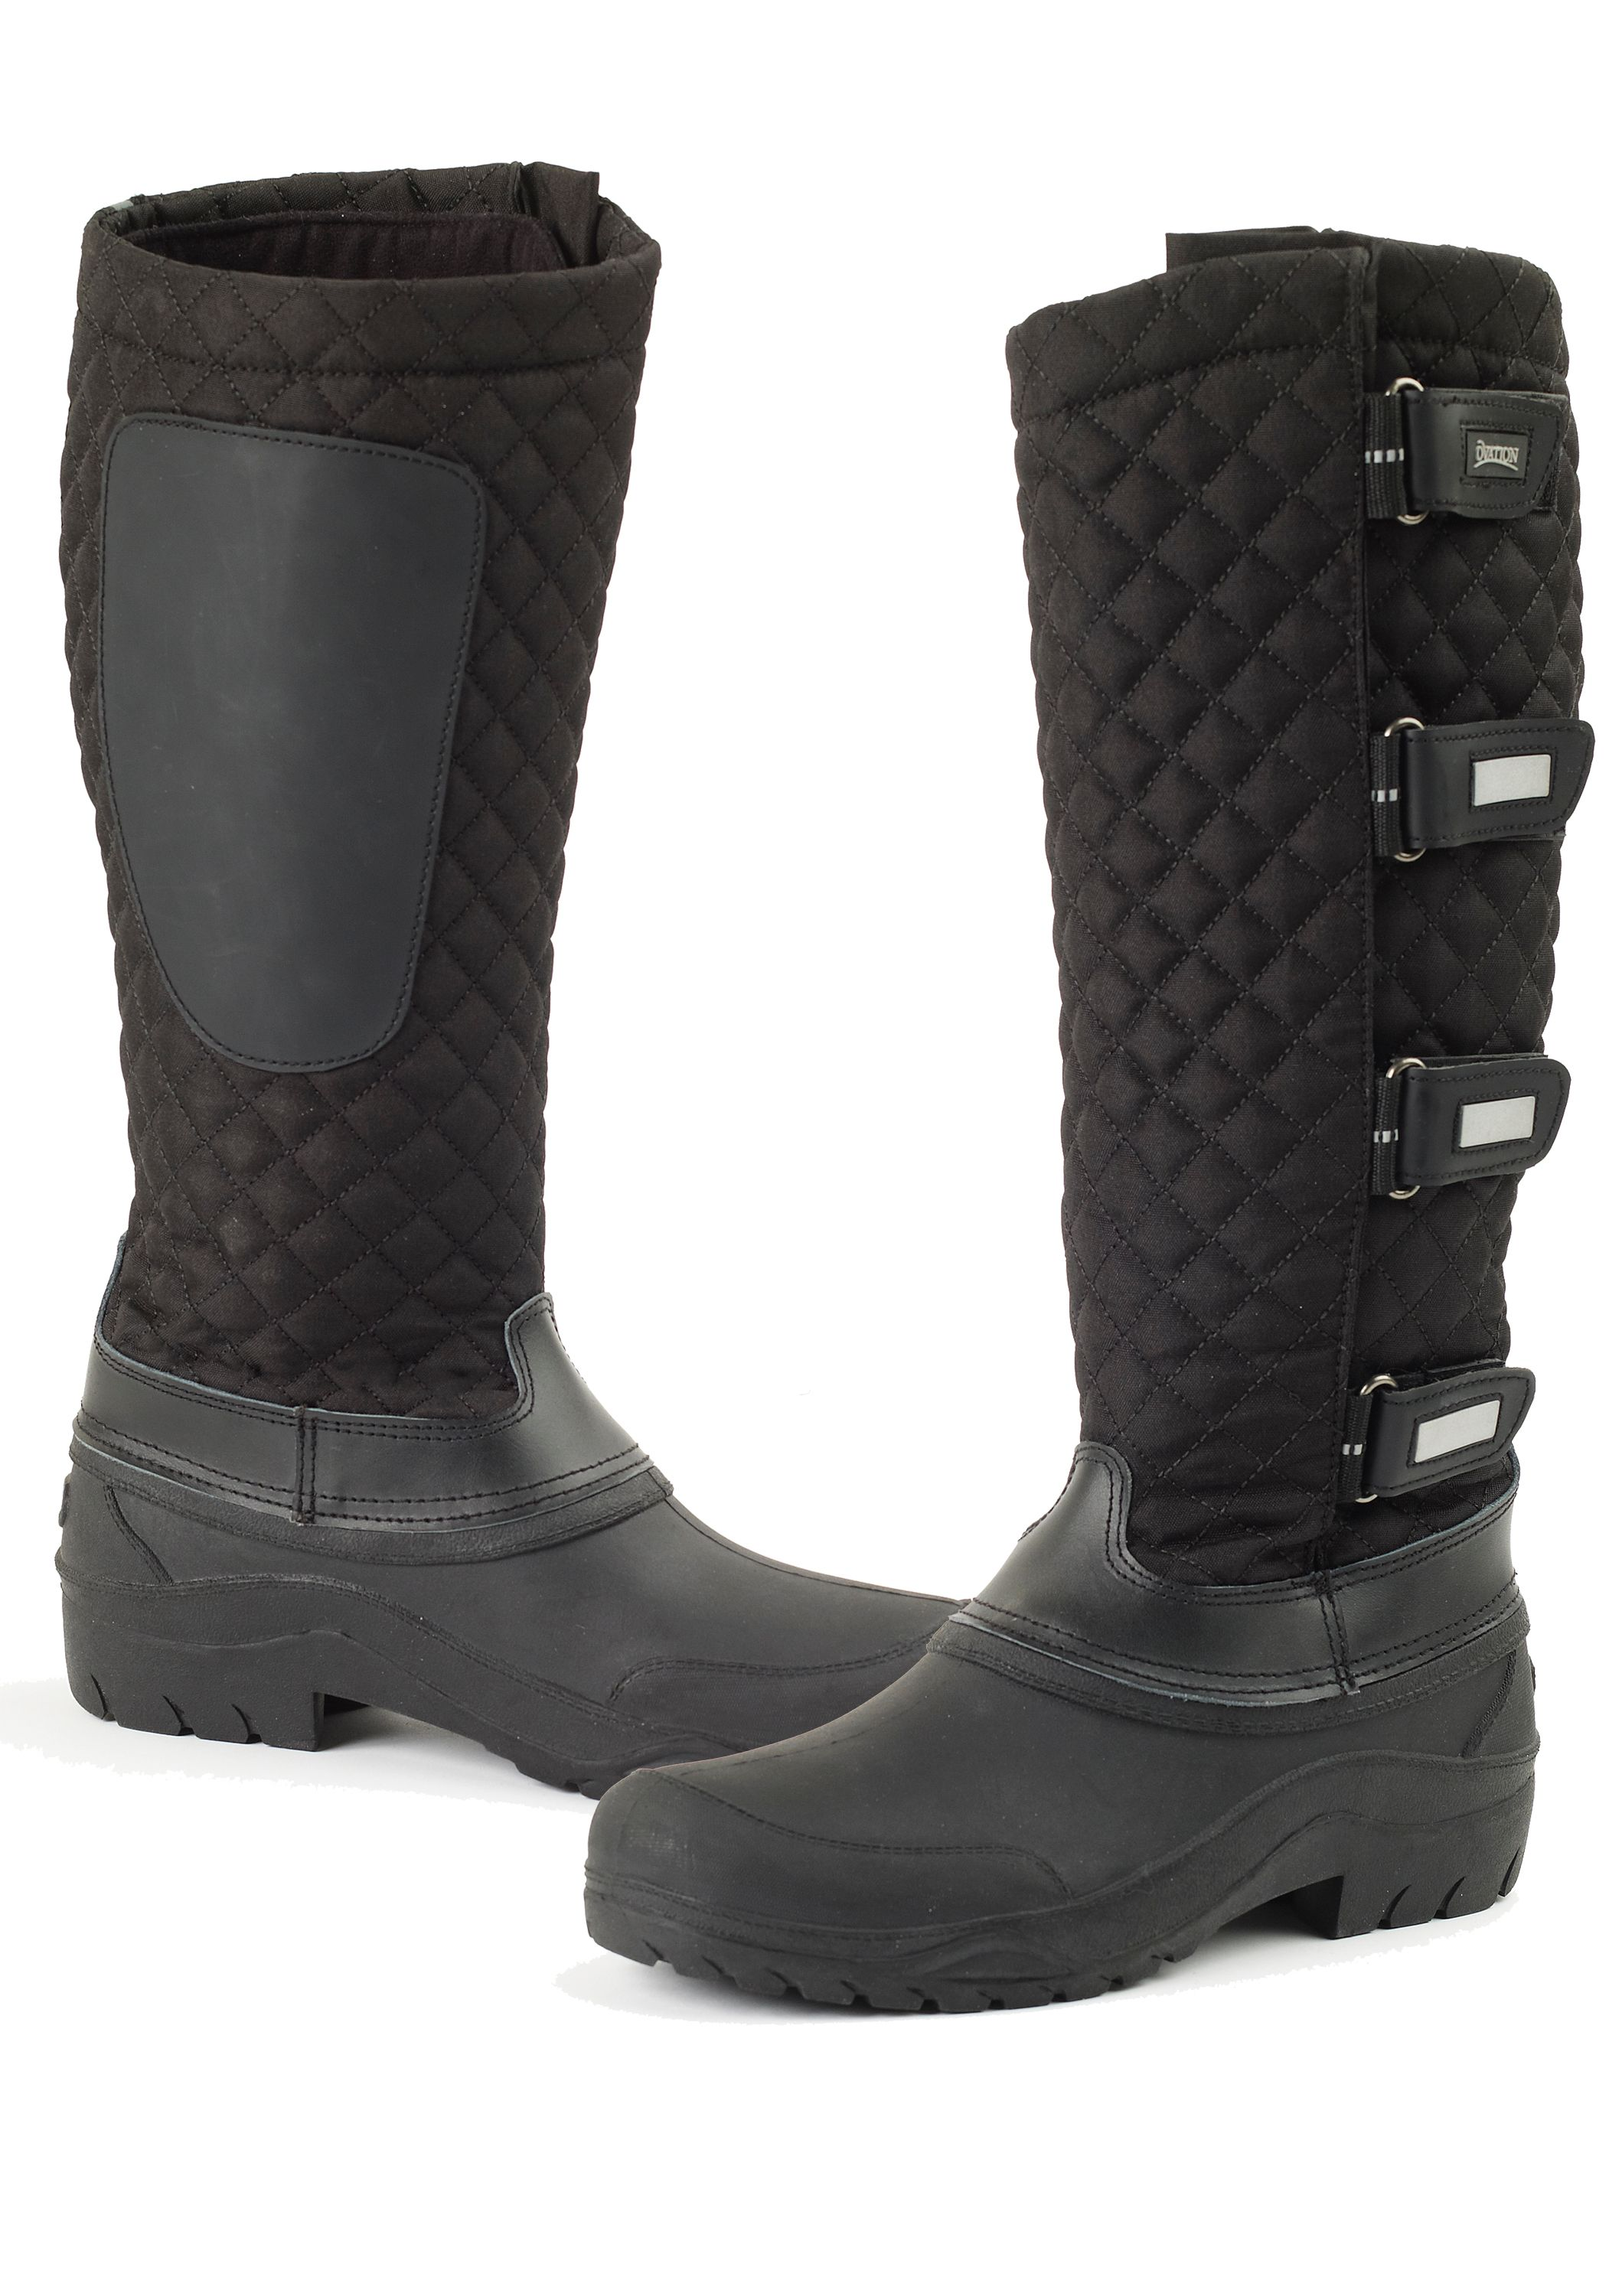 Ovation Blizzard Winter Rider - Ladies